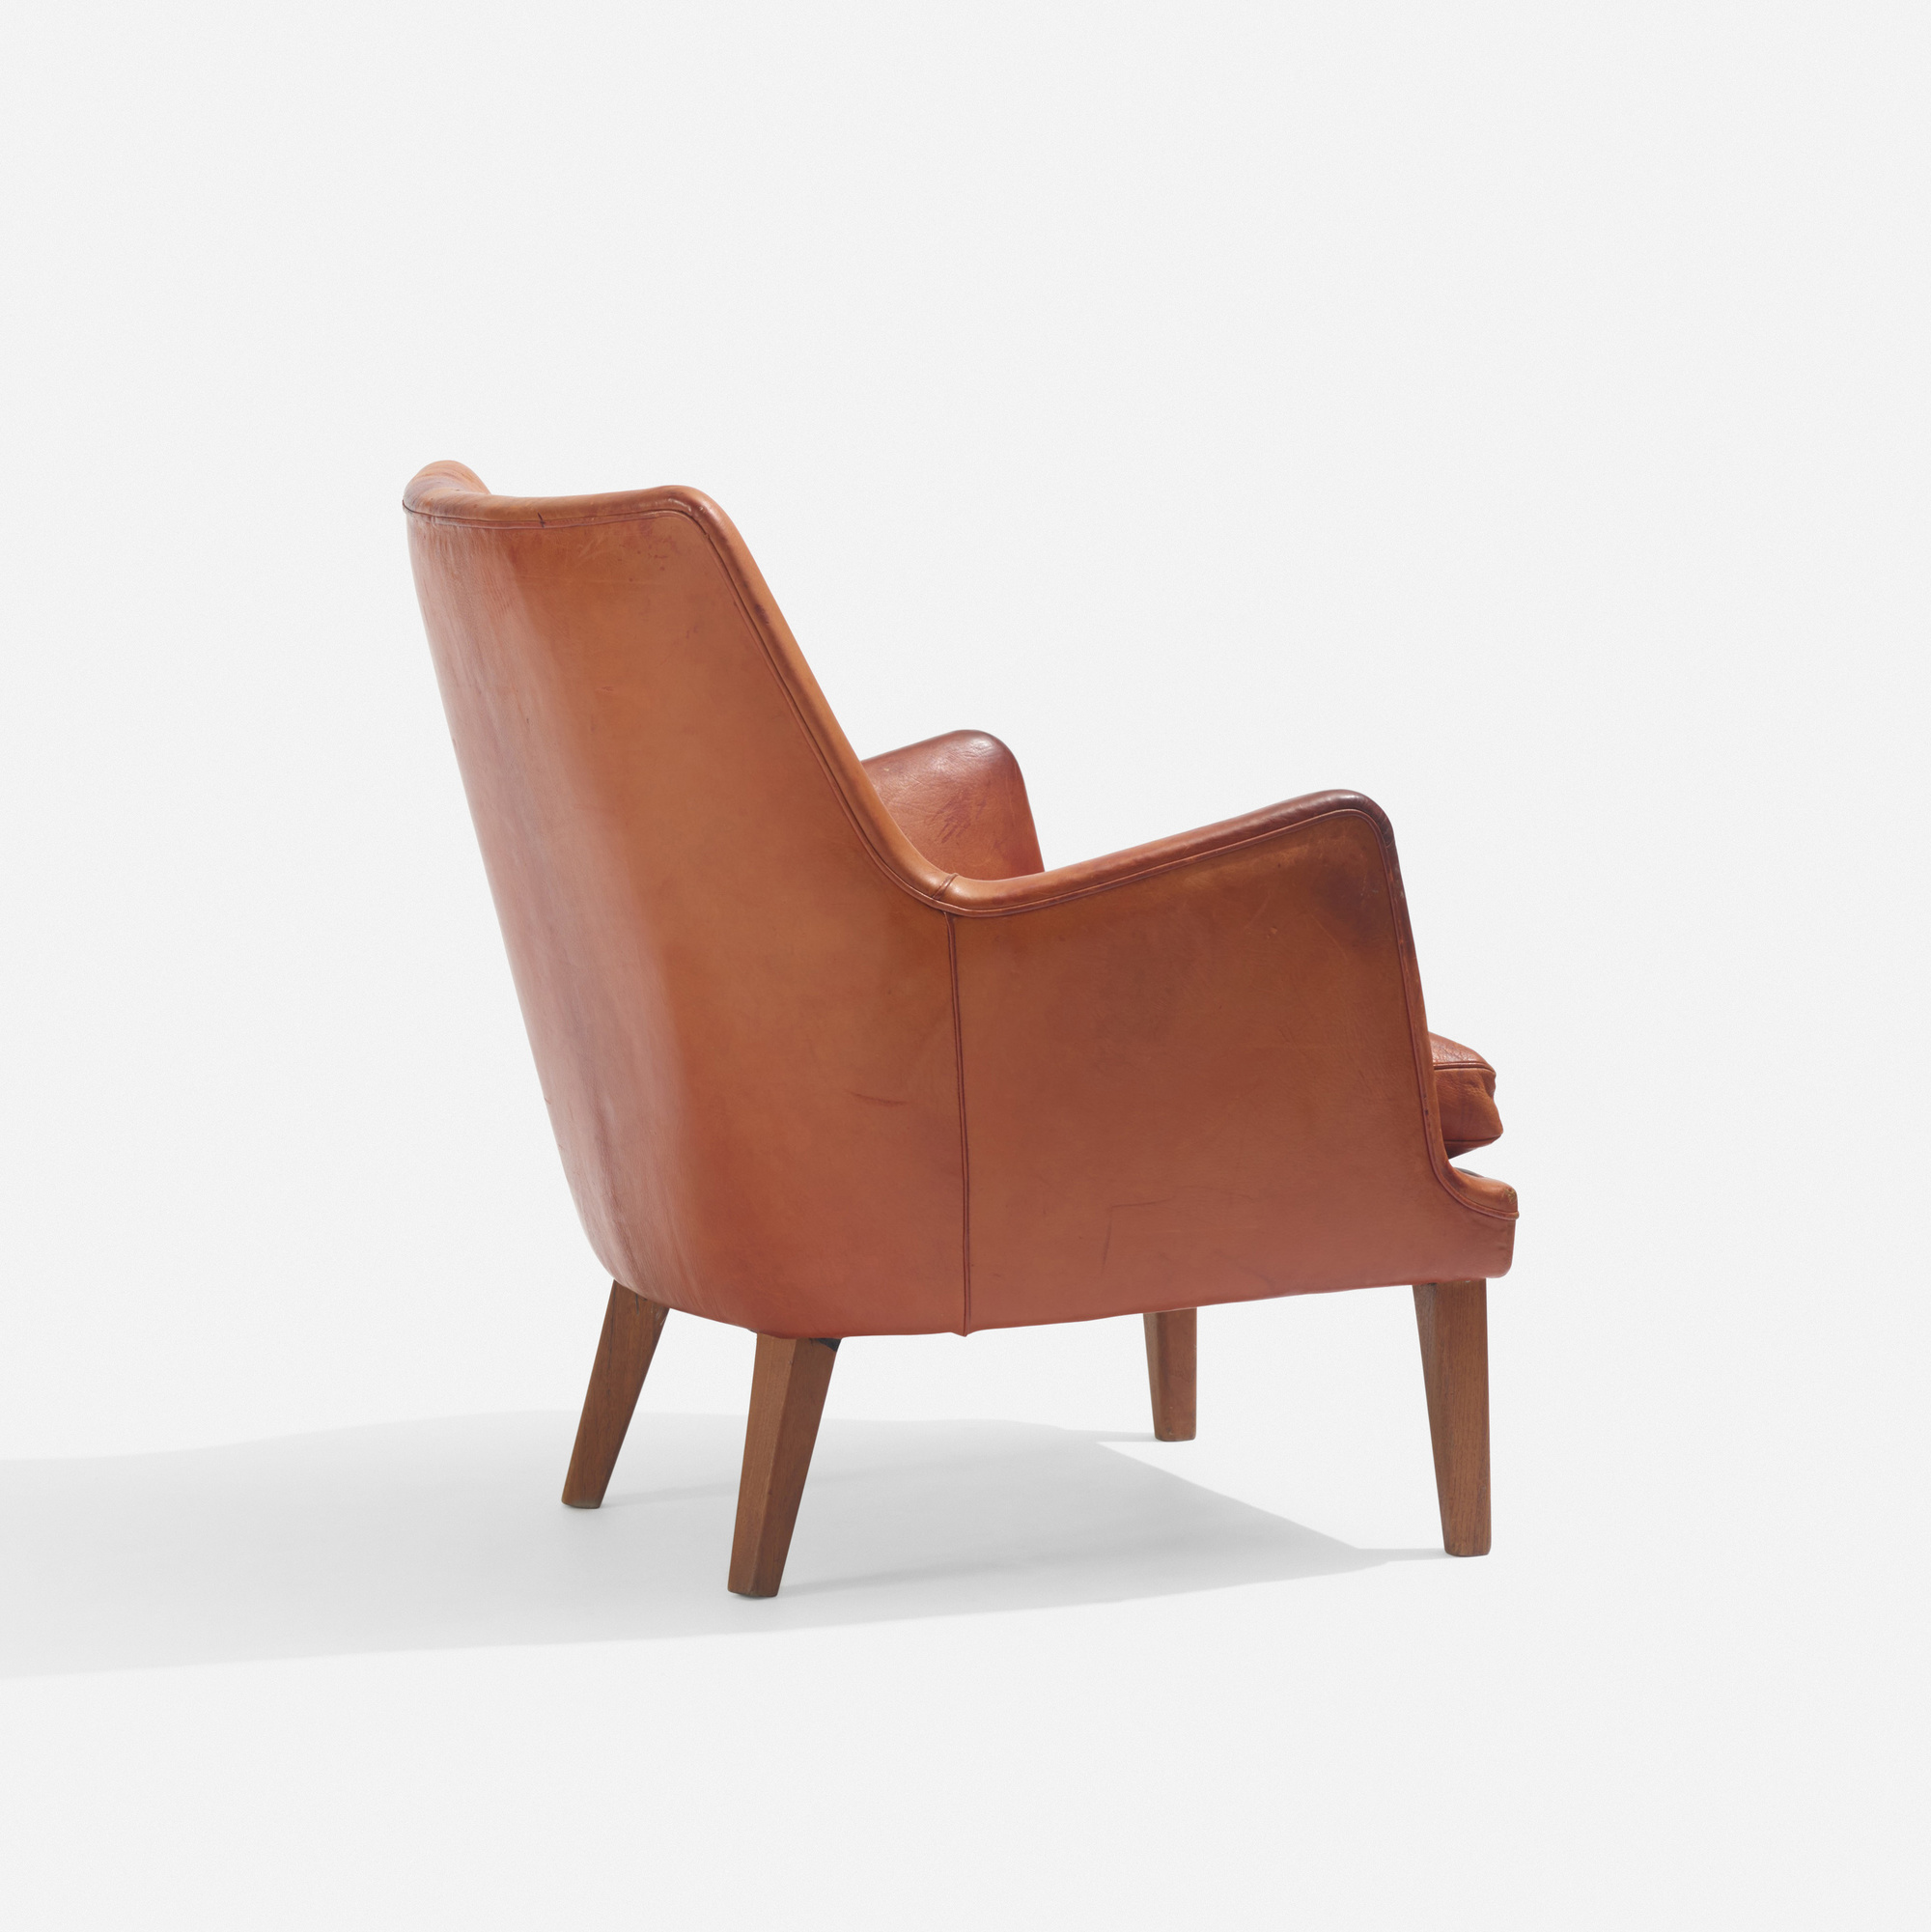 276: Arne Vodder / lounge chair (2 of 4)